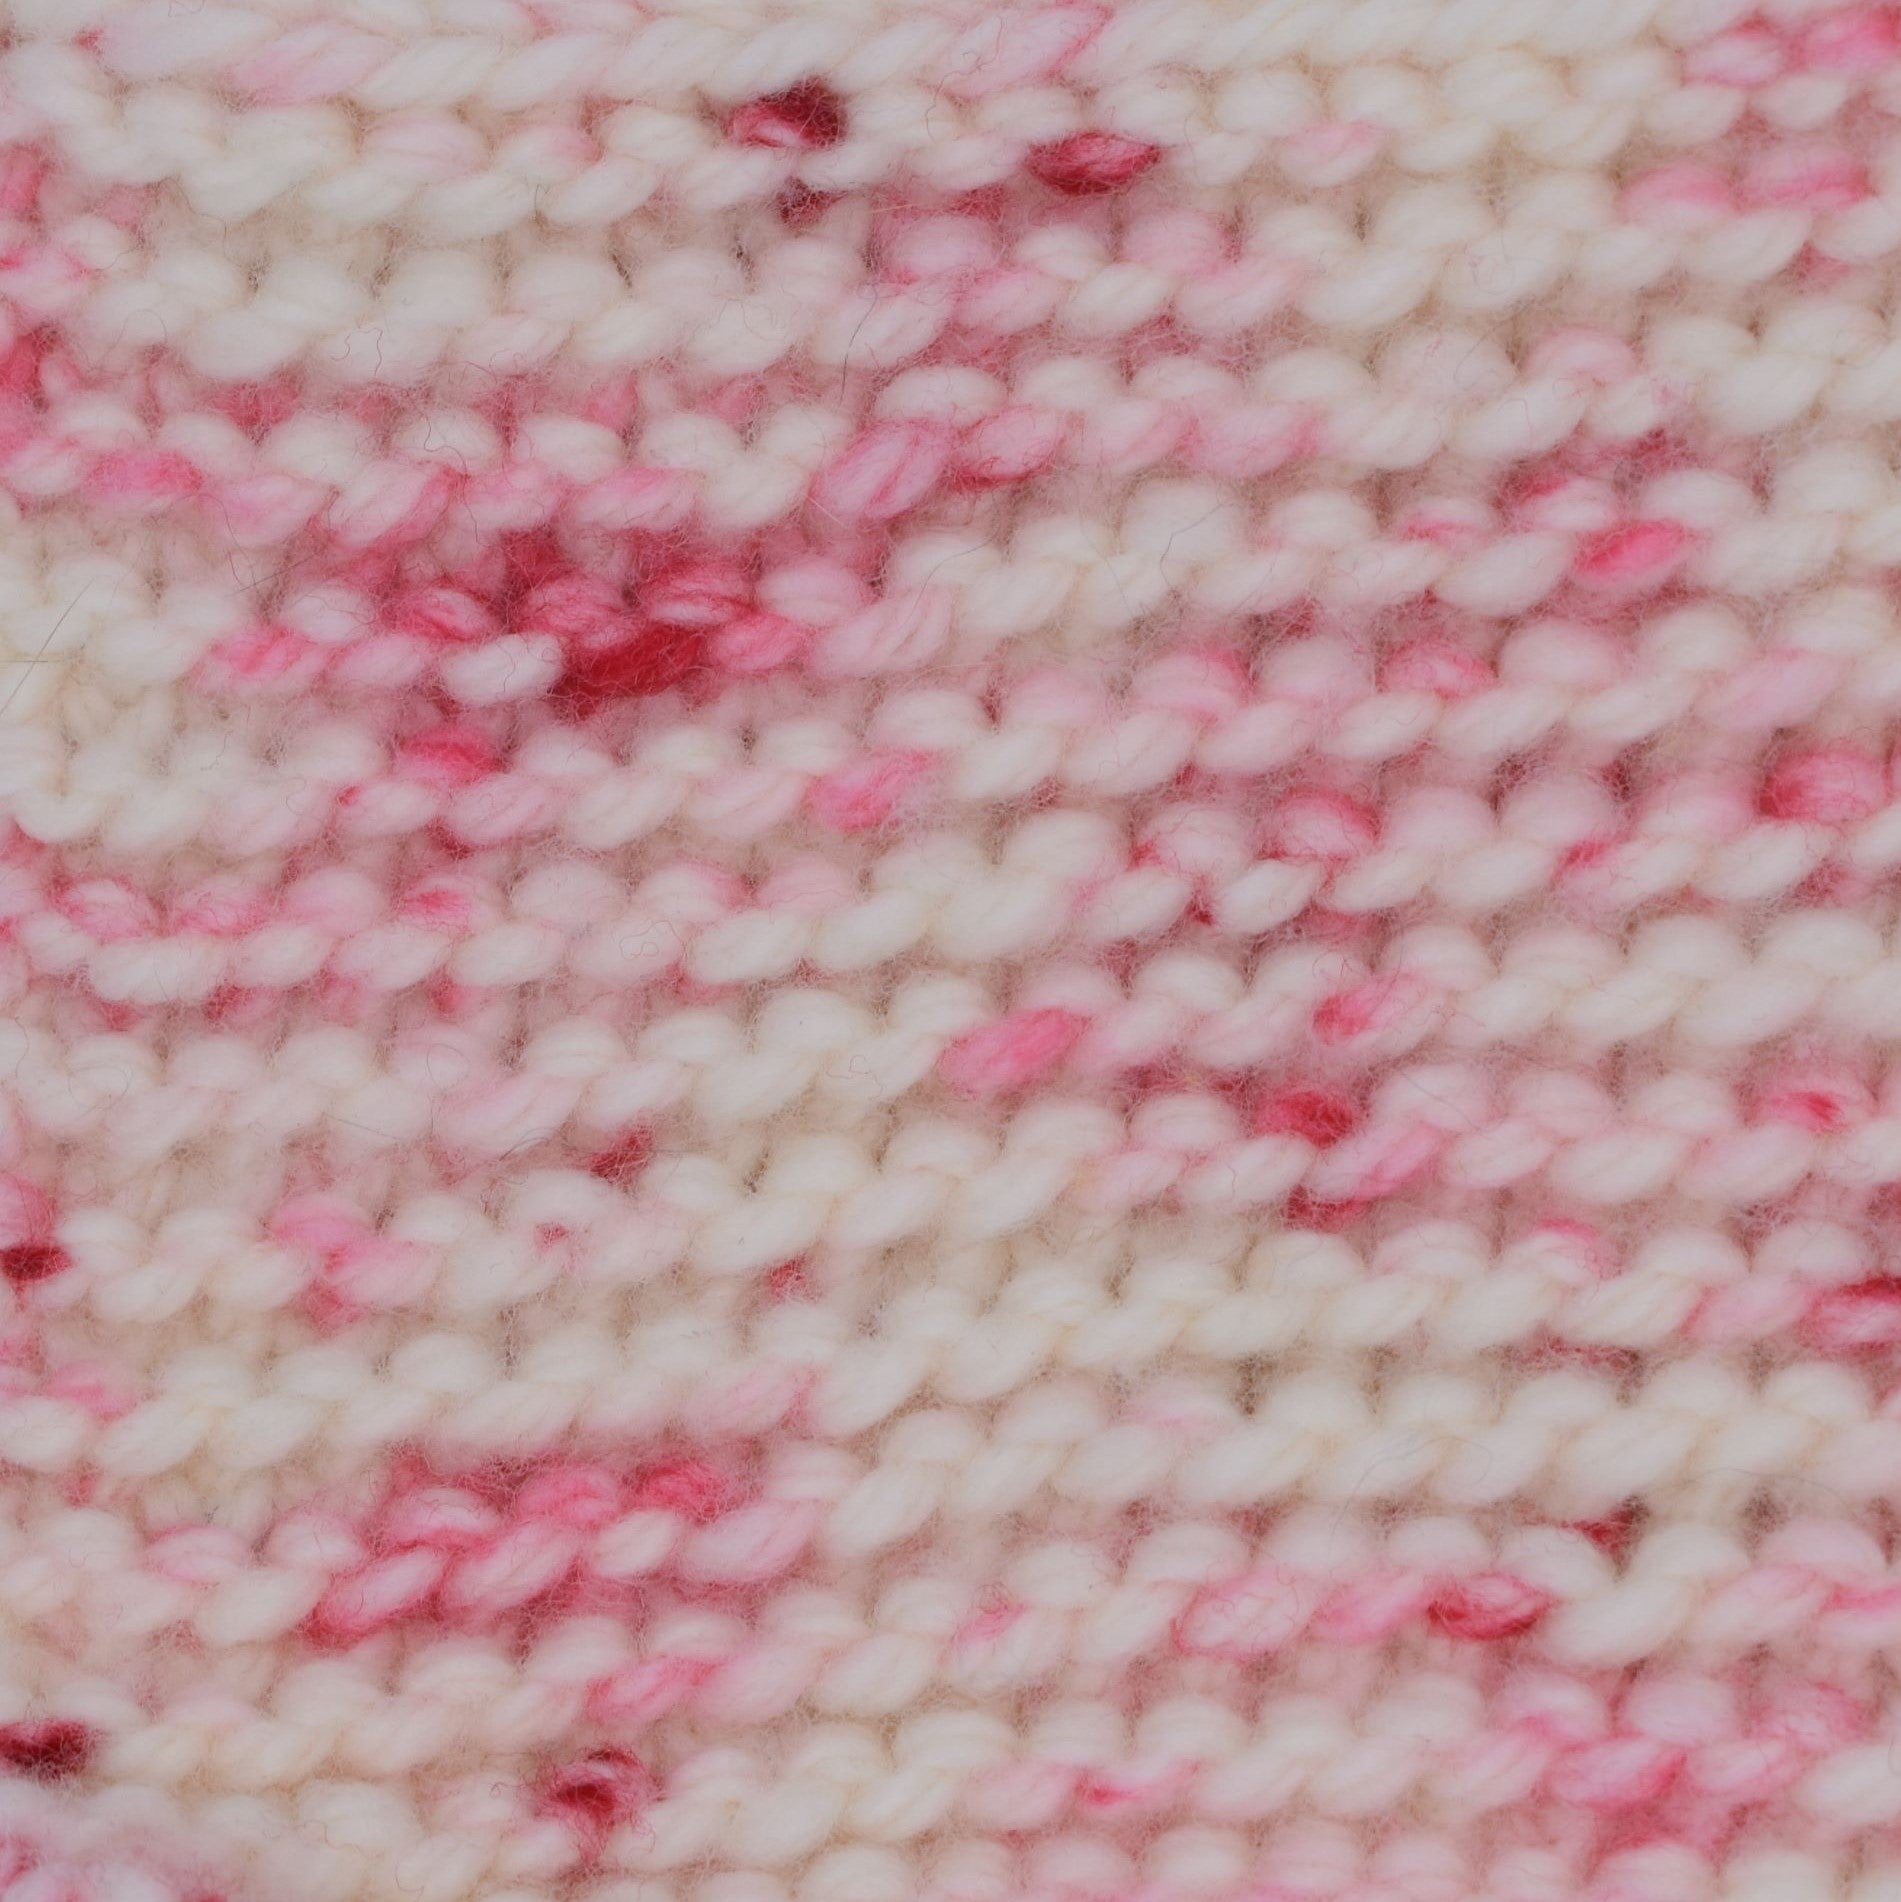 Strawberry Cheesecake Ice Cream Yarn